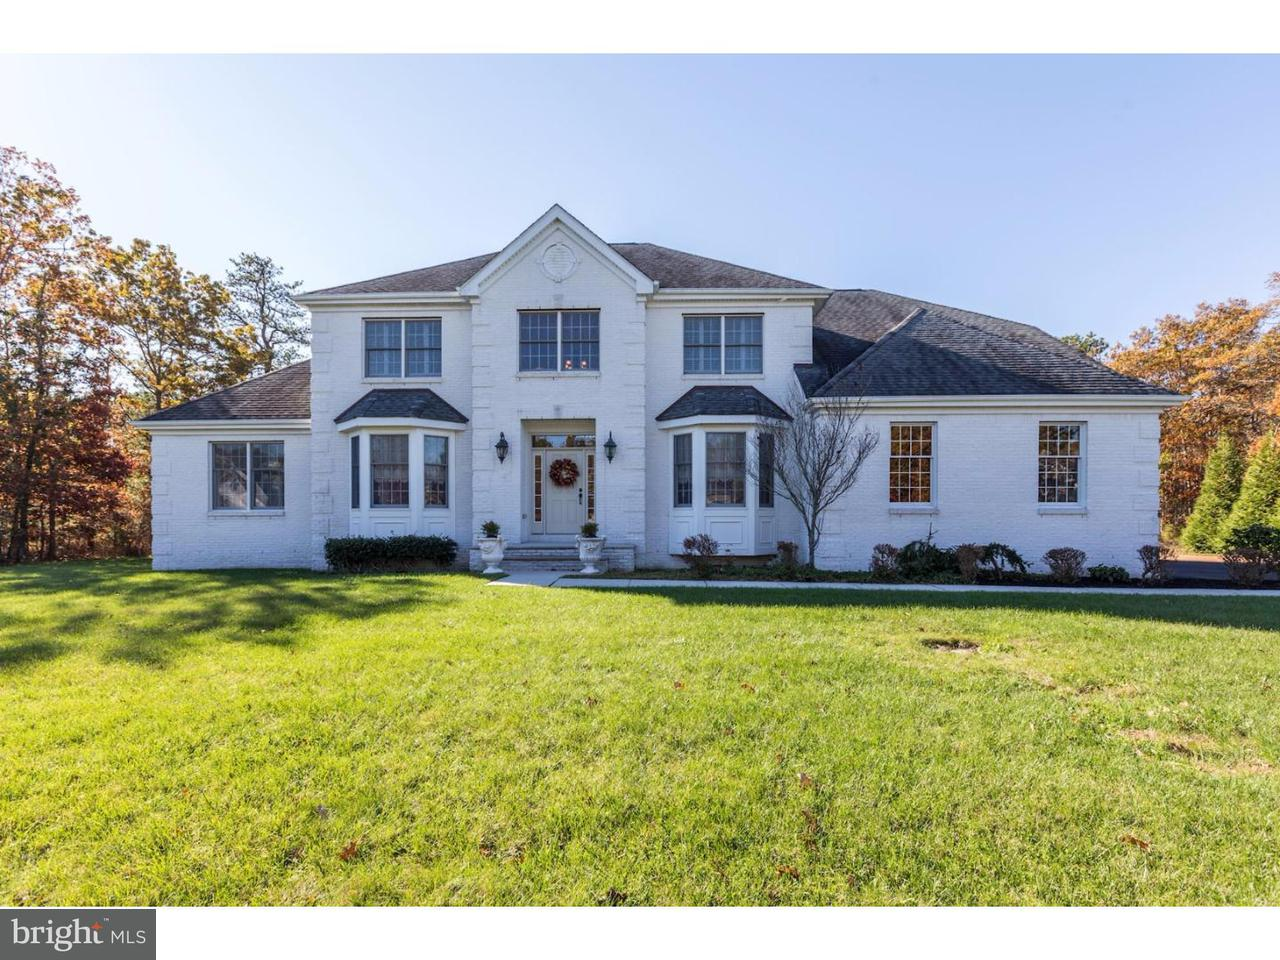 Single Family Home for Sale at 806 FOREST PARK Drive Galloway, New Jersey 08205 United States